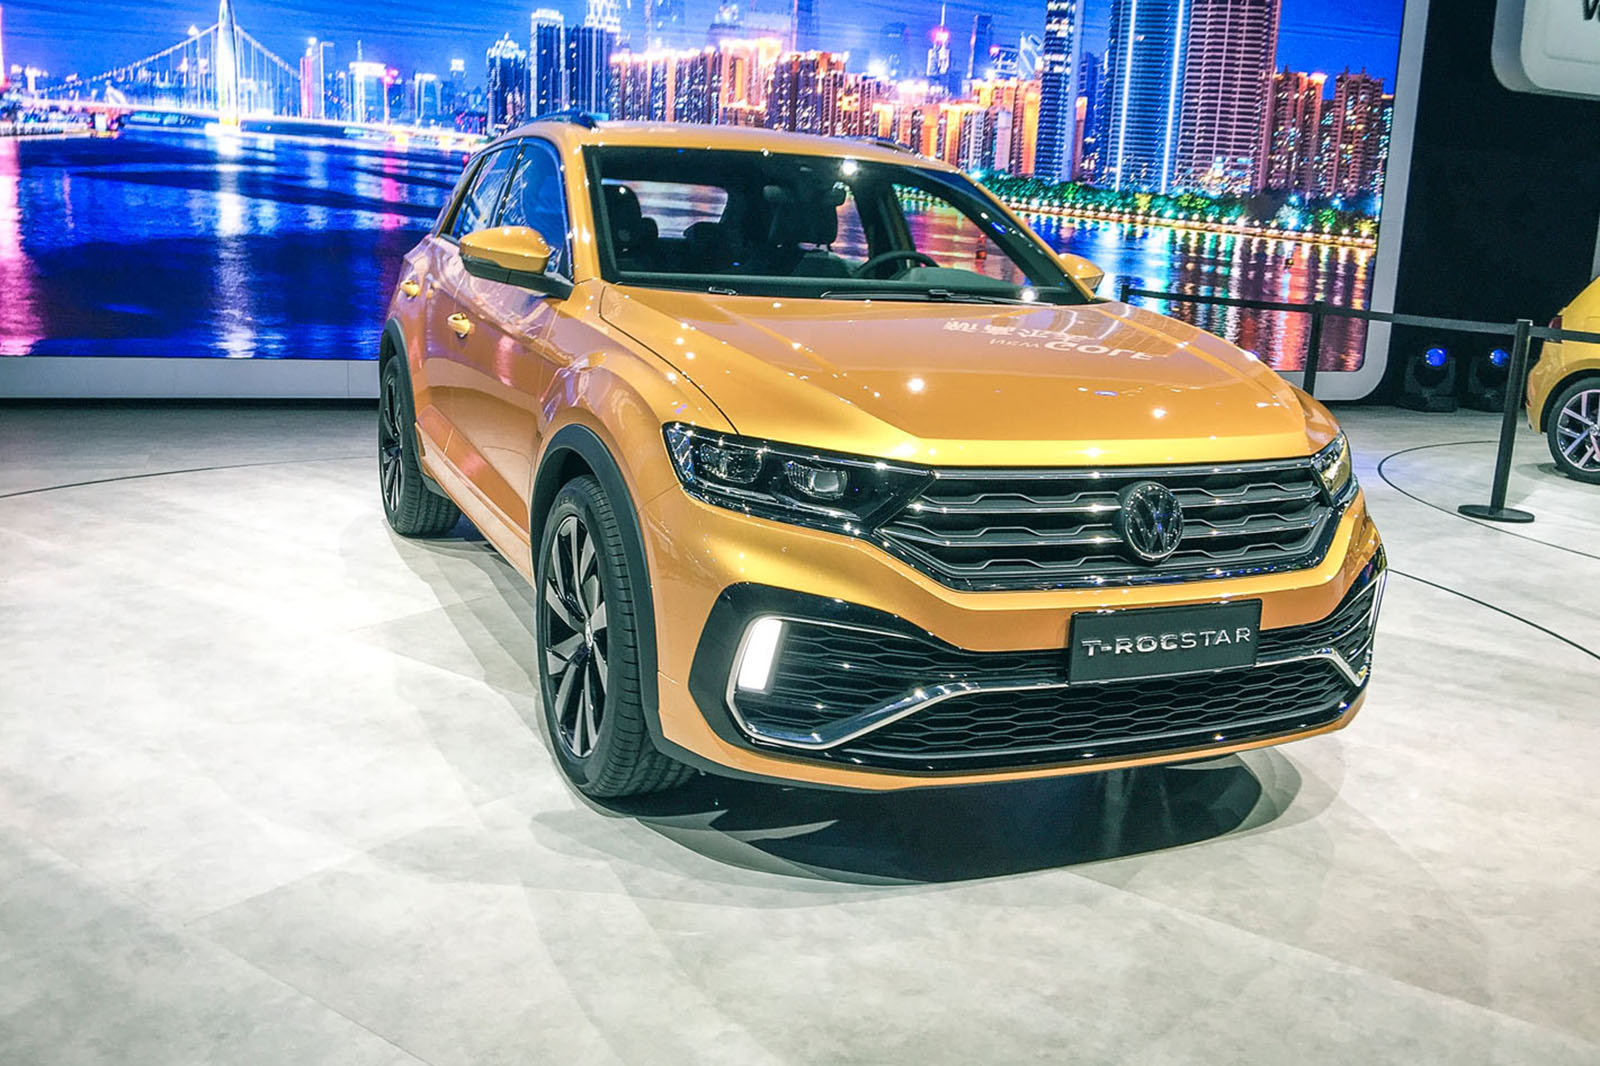 Guangzhou motor show 2017 report autocar for What does a motor vehicle report show